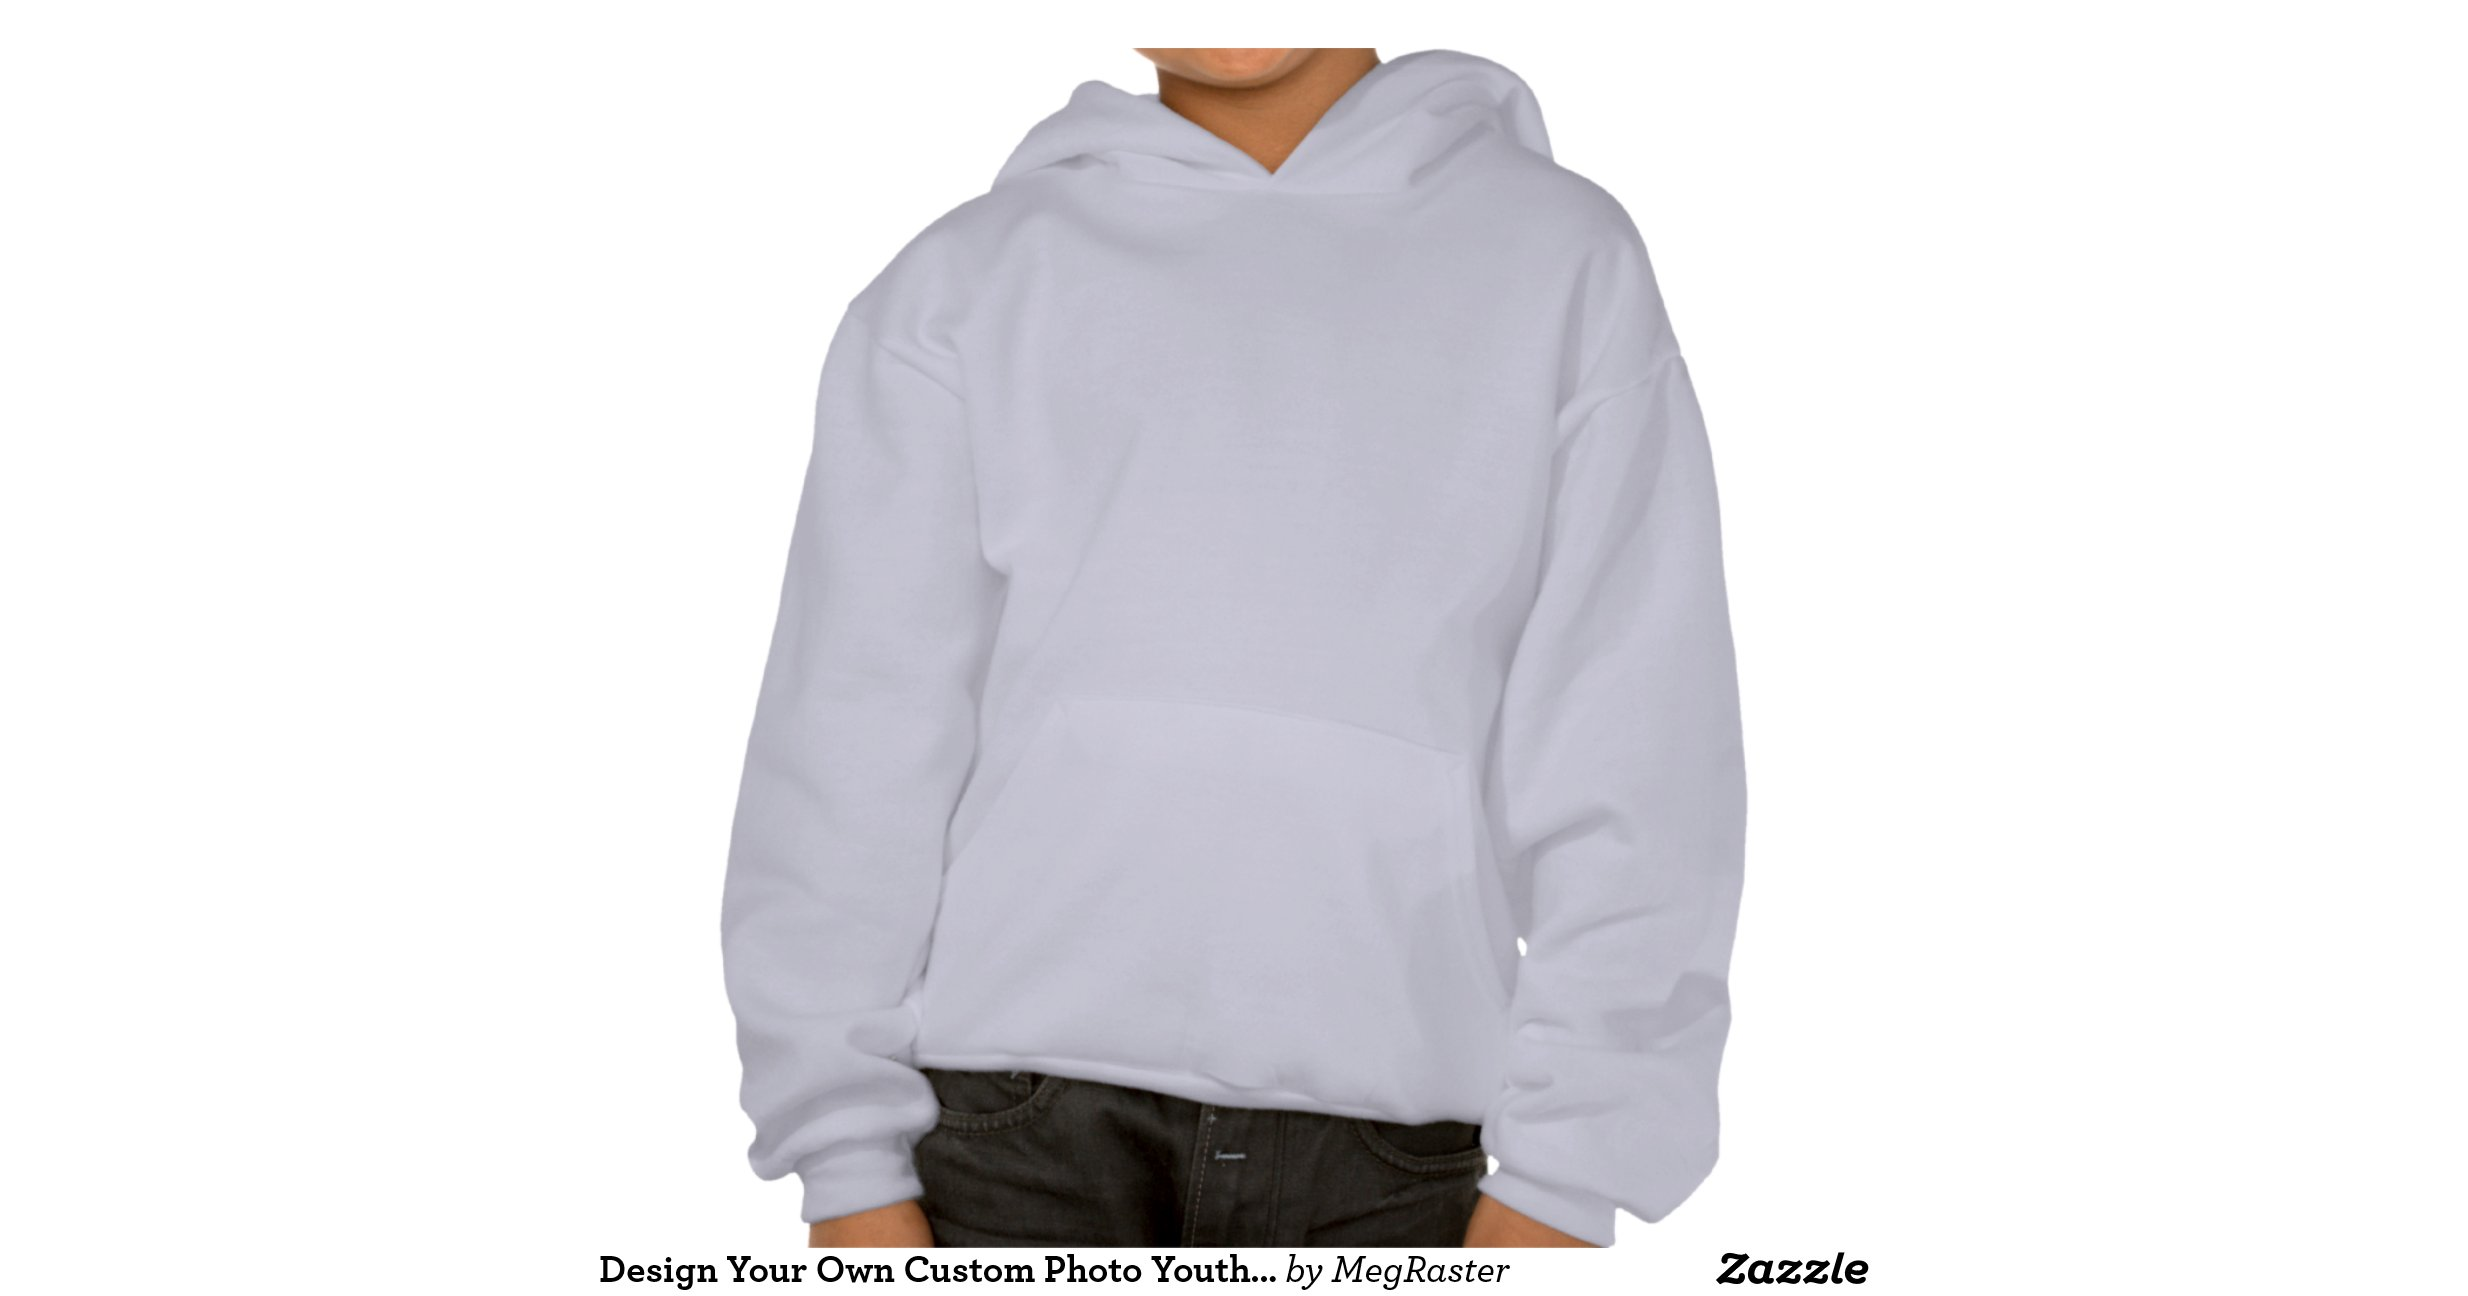 Customize your hoodie